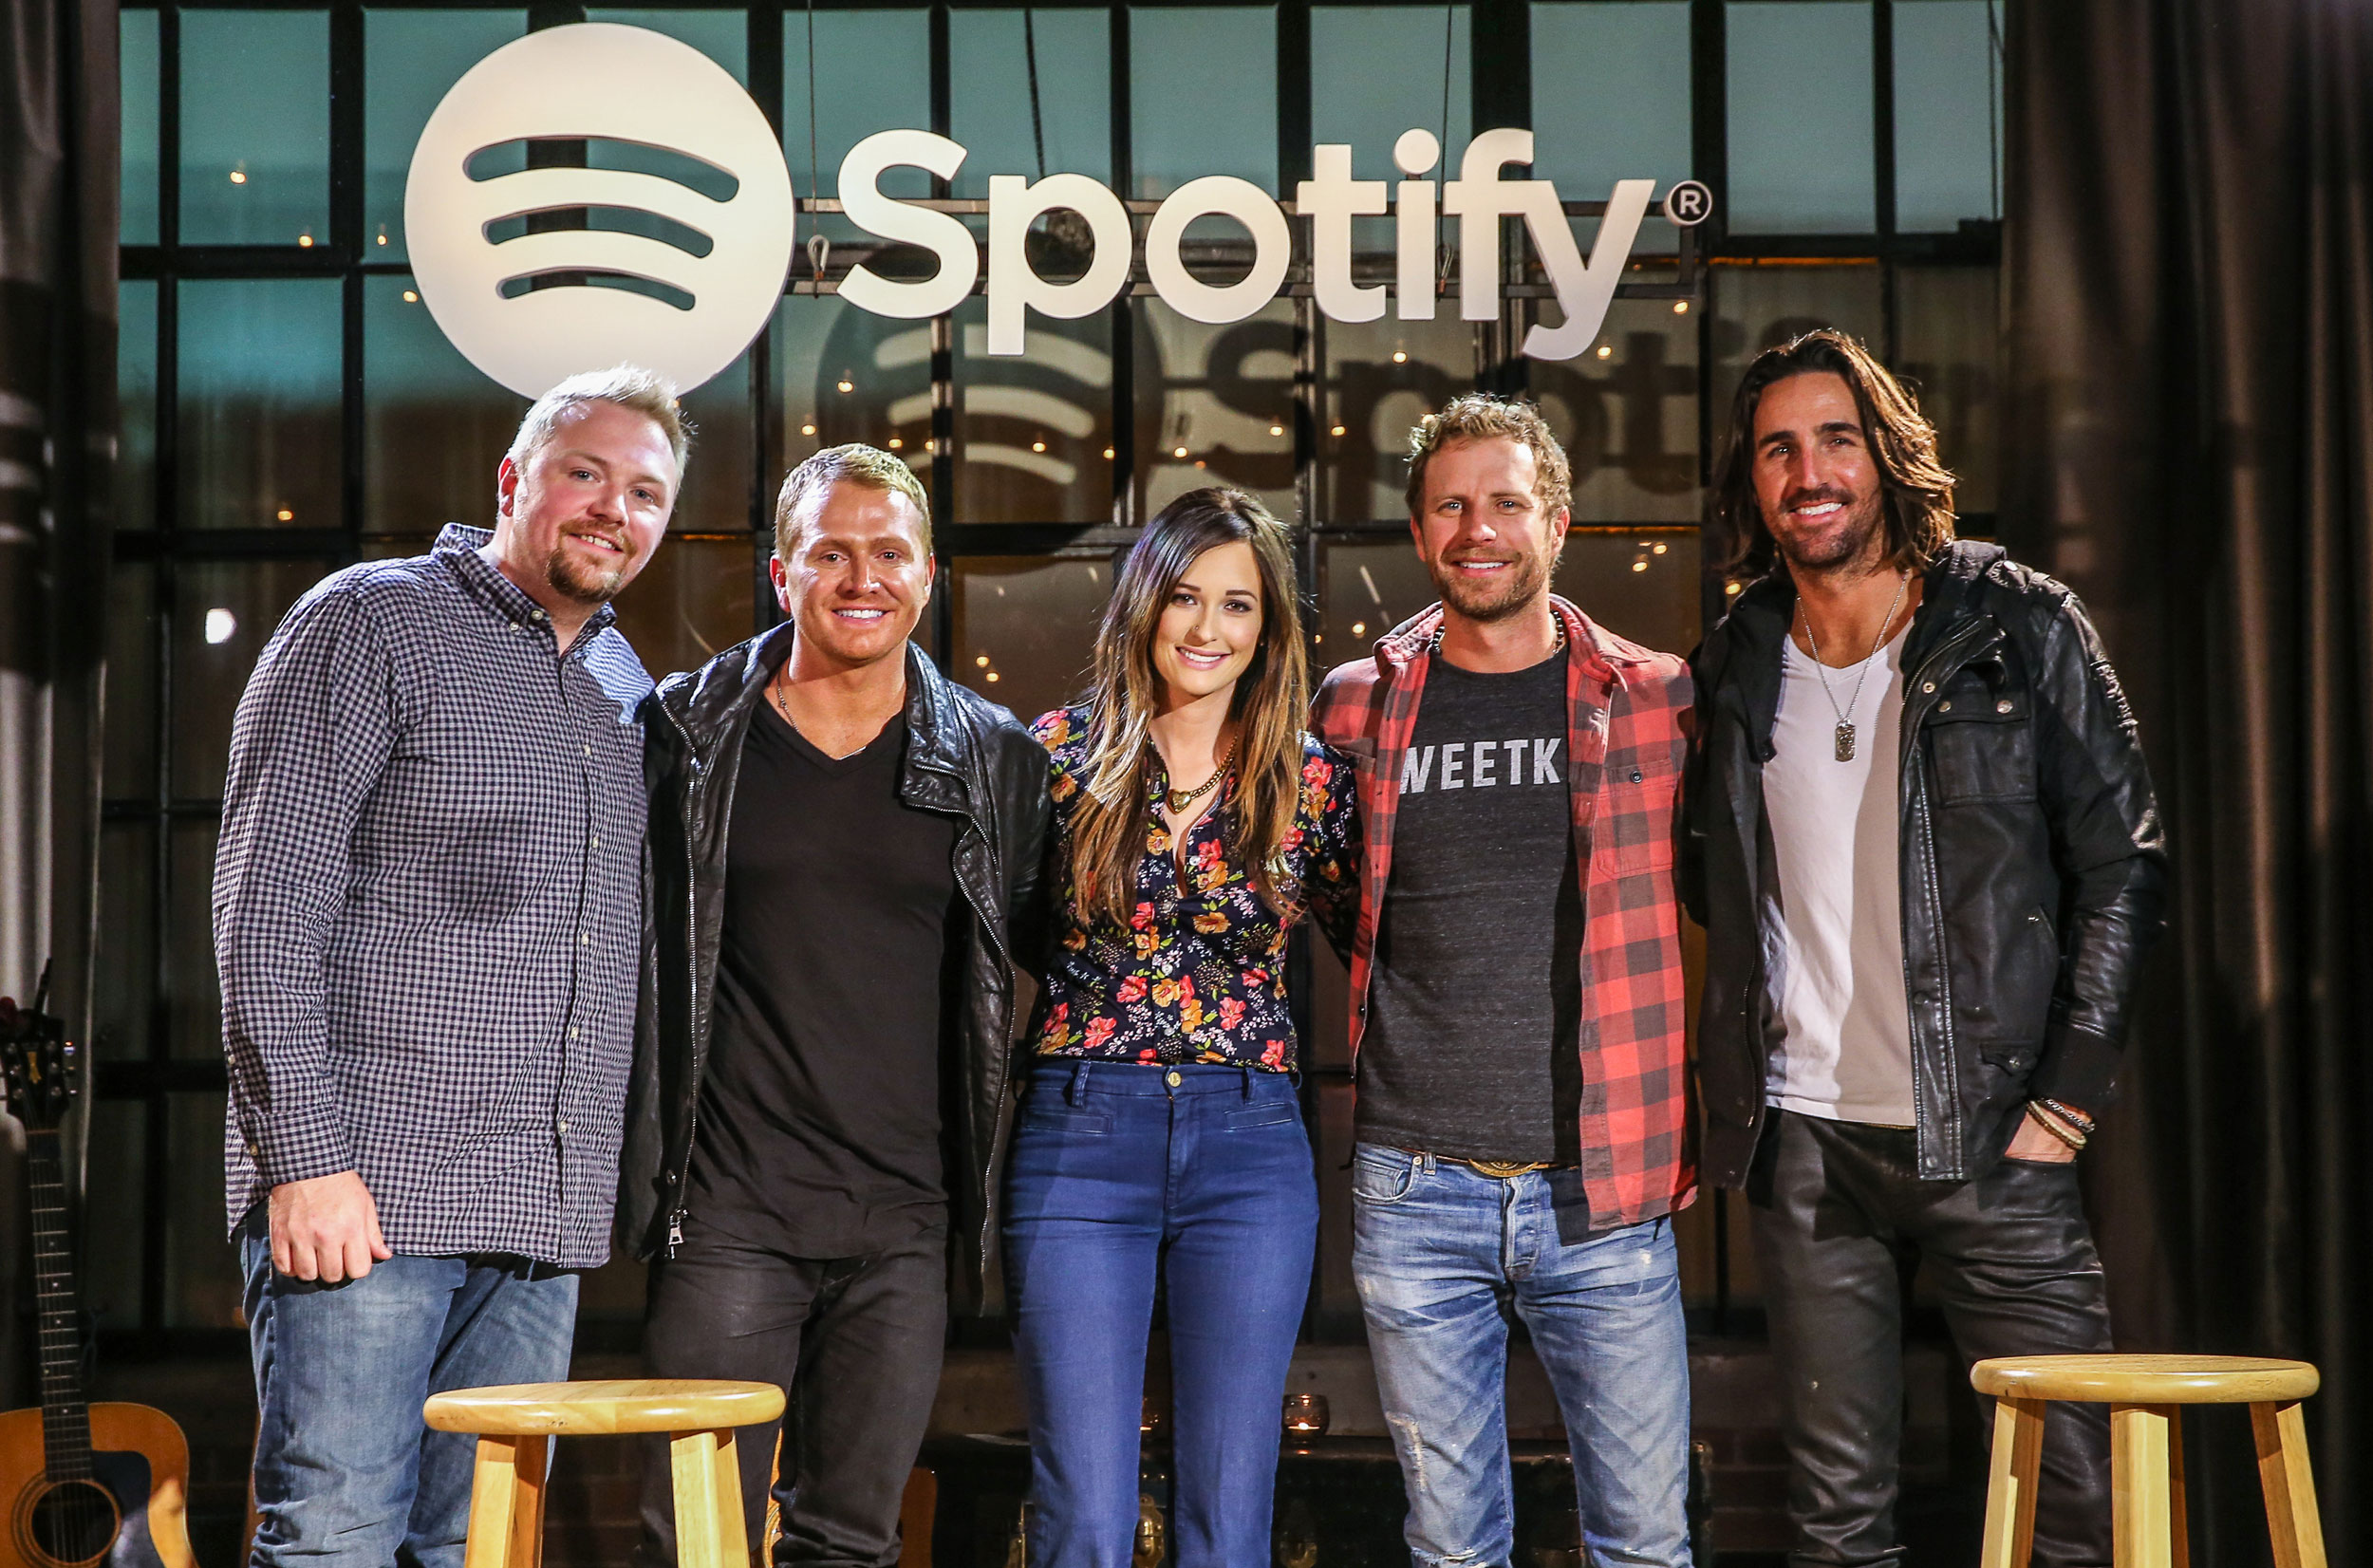 Josh Osborne•Shane McAnally•Kacey Musgraves•Dierks Bentley•Jake Owen